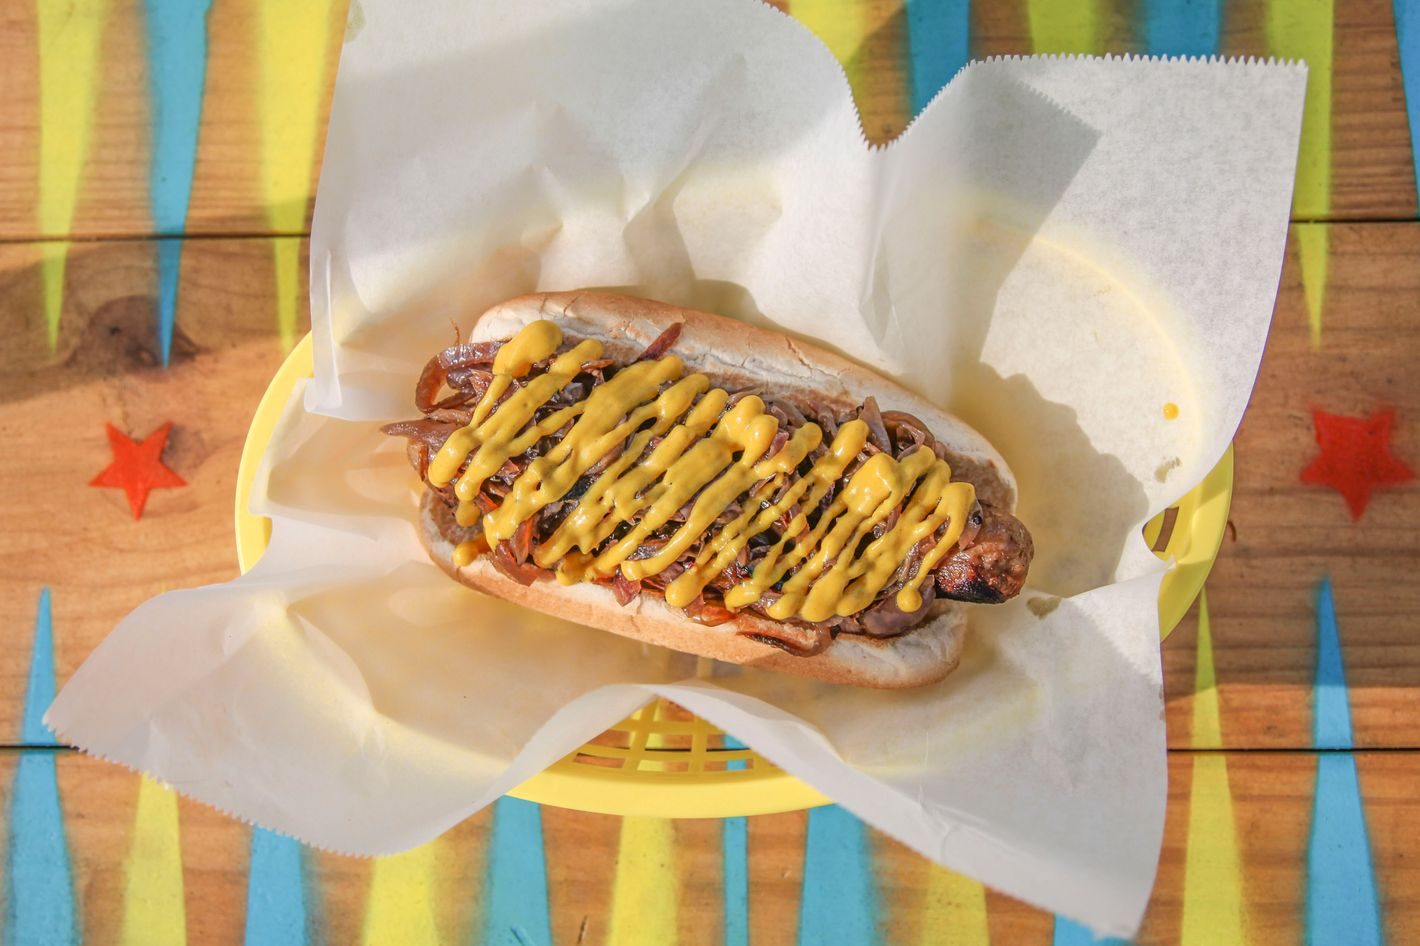 ... bratwurst with mustard and caramelized onions. Photo: Hannah Mattix